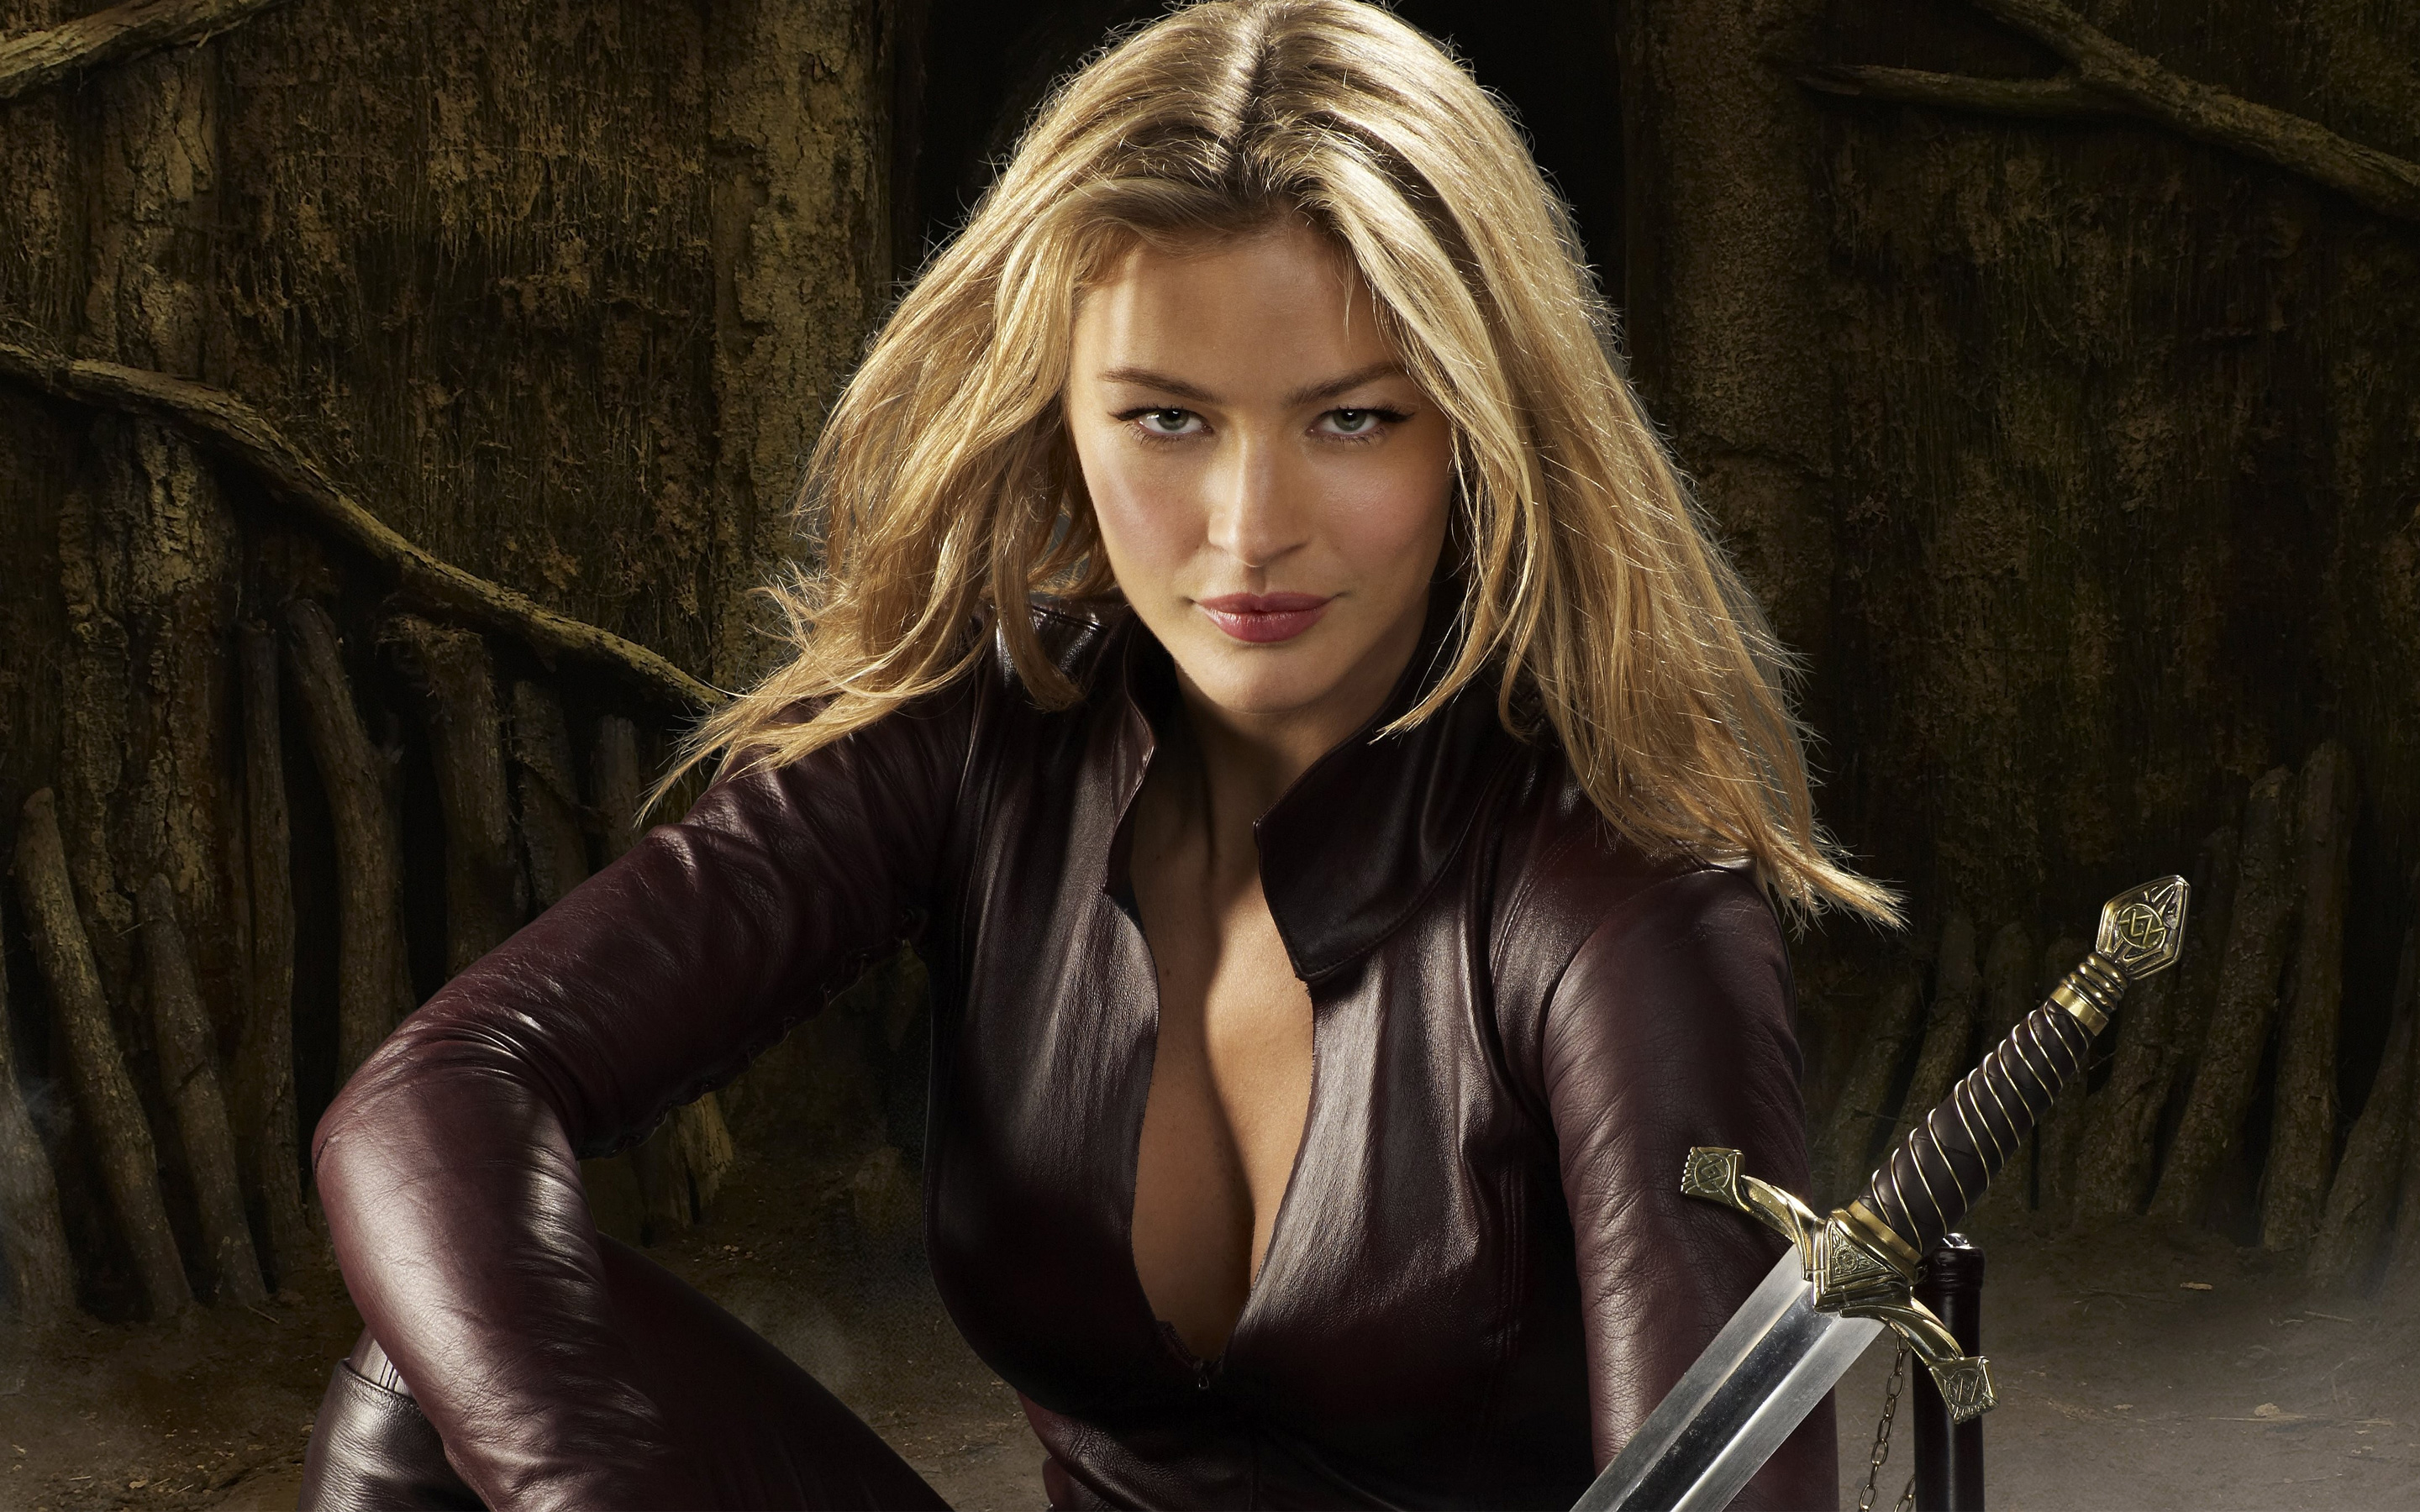 Tabrett Bethell Backgrounds, Compatible - PC, Mobile, Gadgets  2880x1800 px